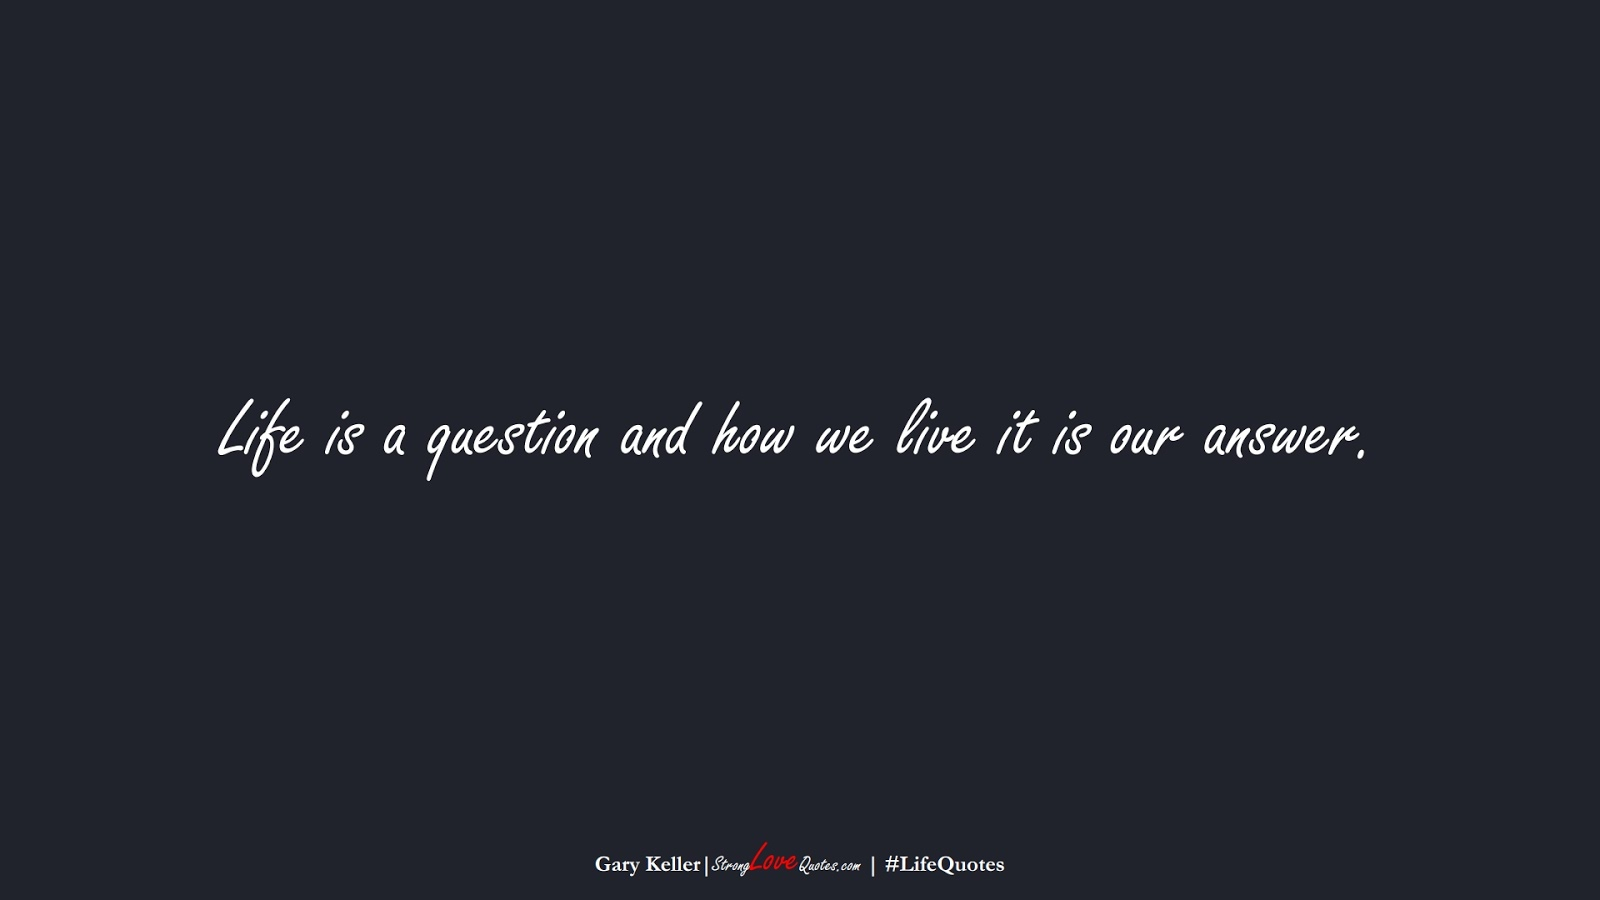 Life is a question and how we live it is our answer. (Gary Keller);  #LifeQuotes